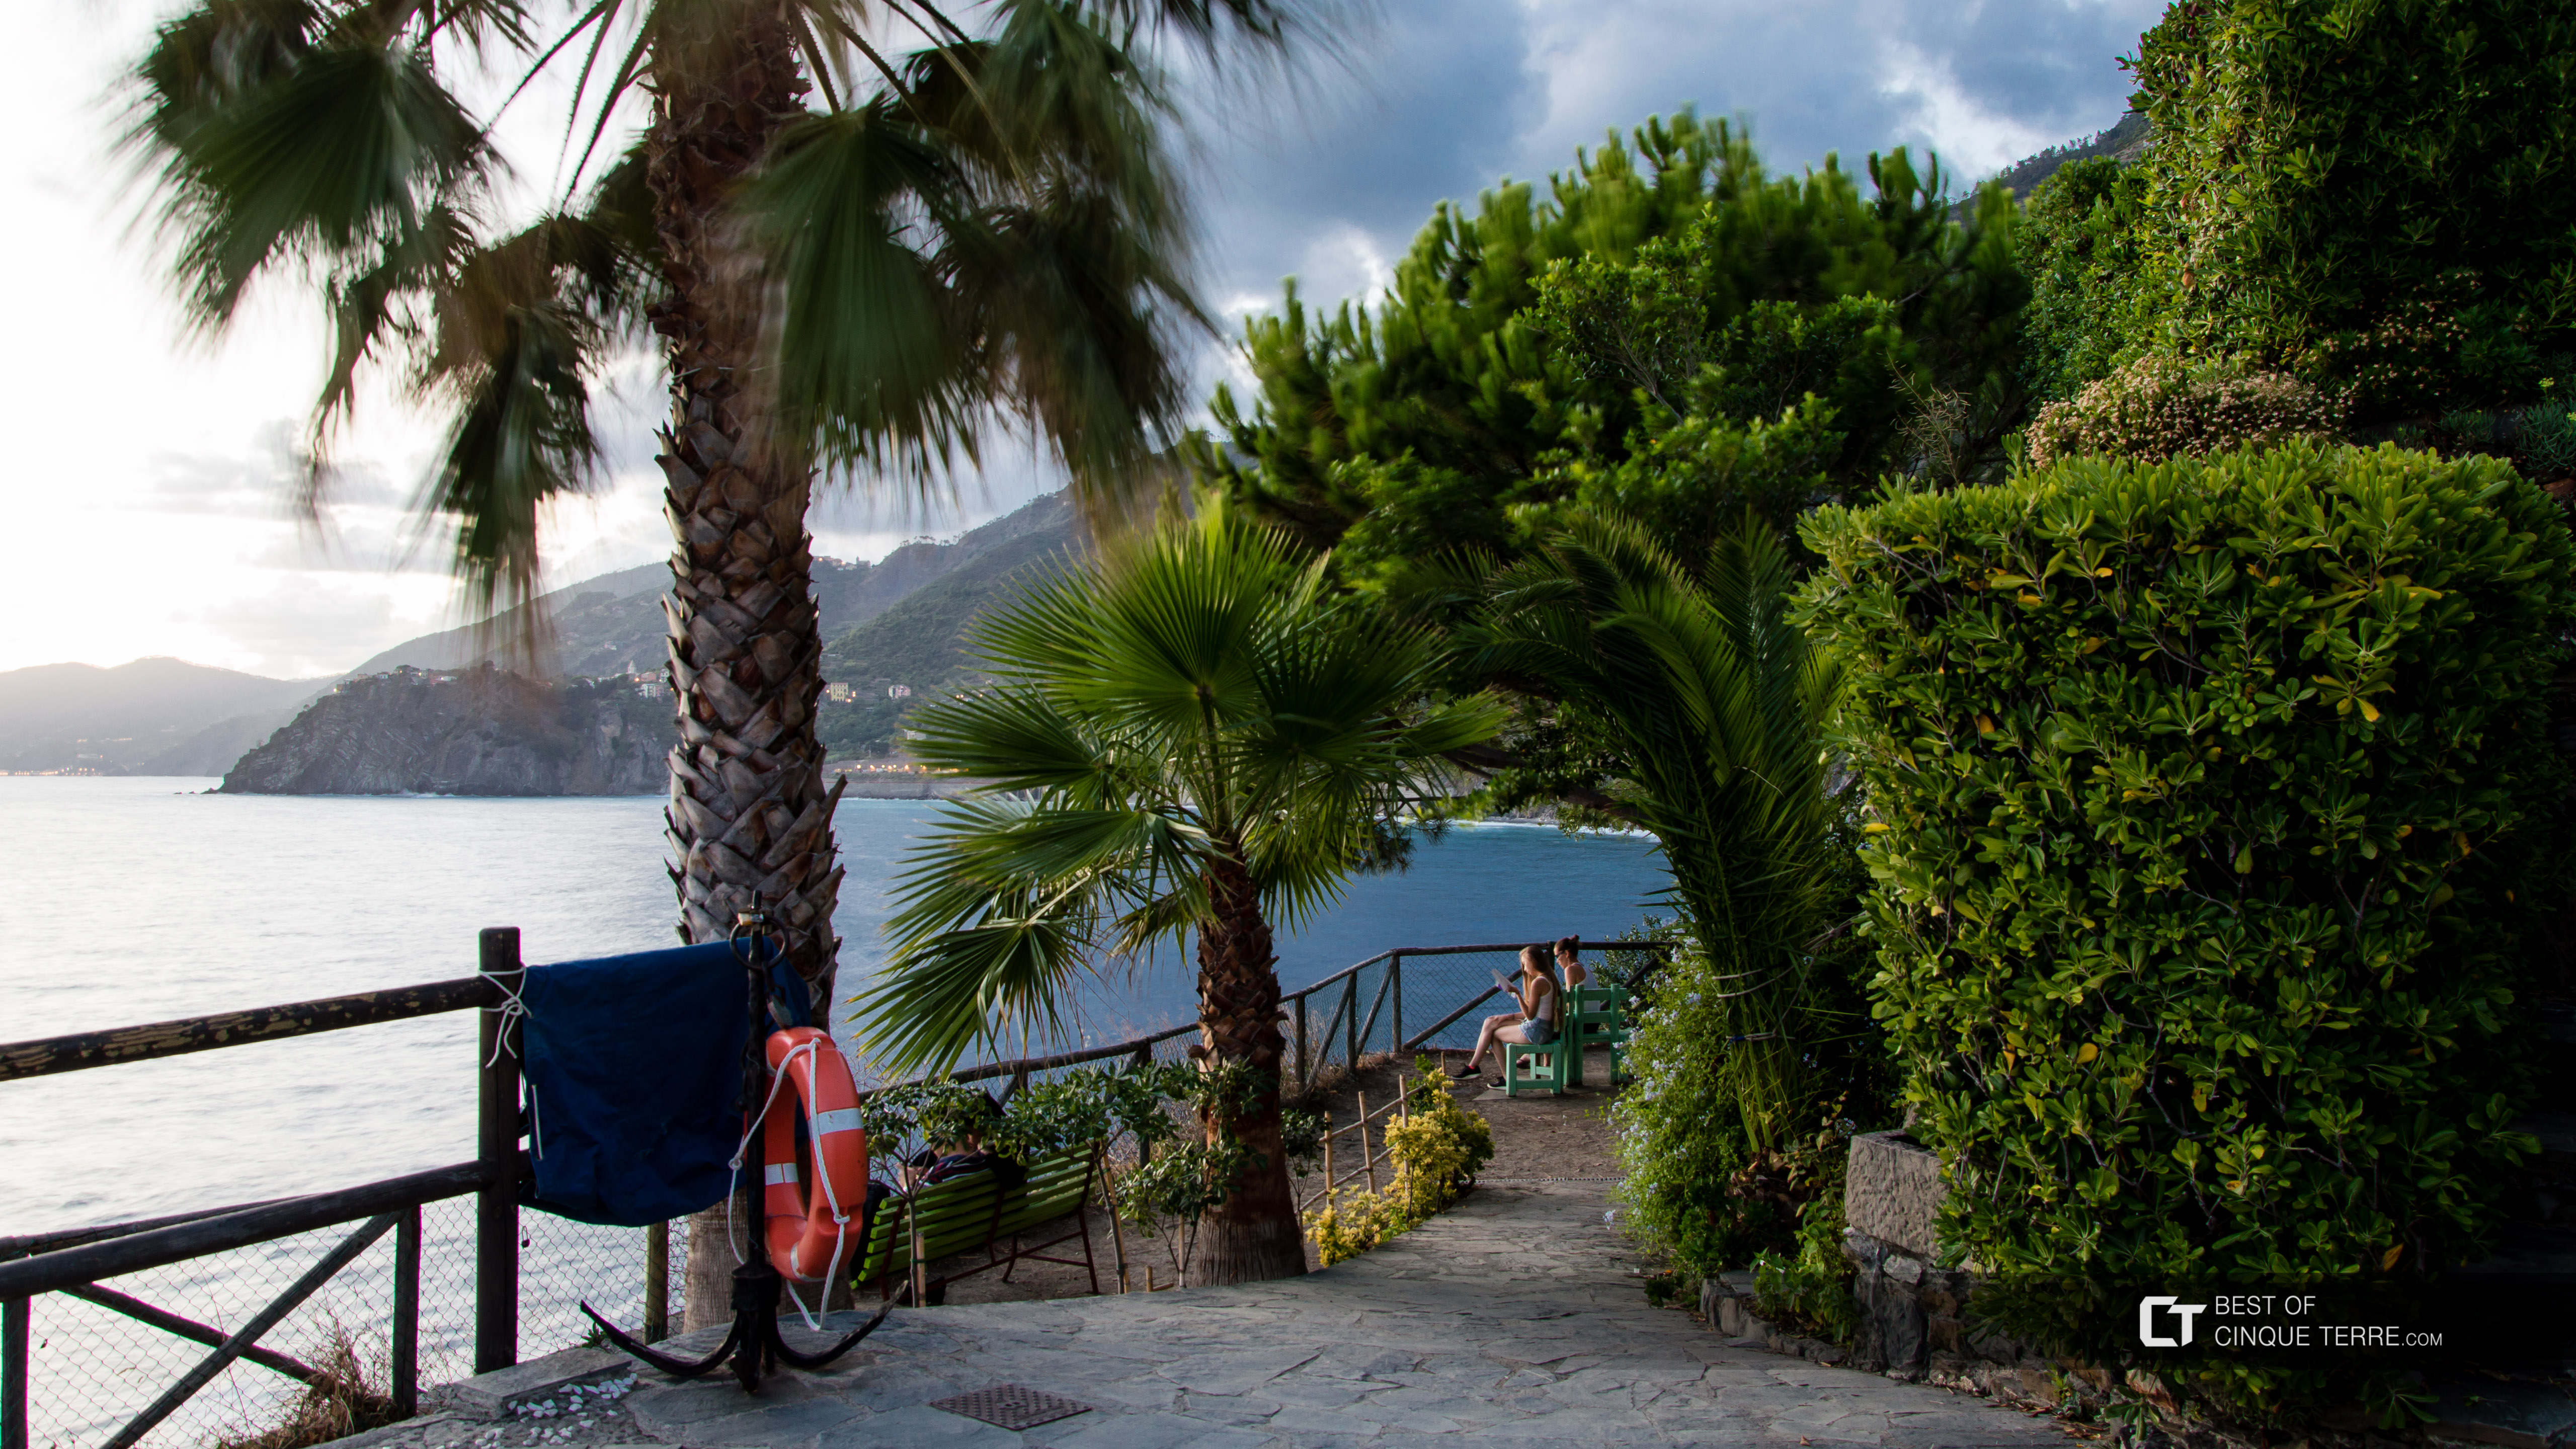 A rest area on the hill near the promenade, Manarola, Cinque Terre, Italy